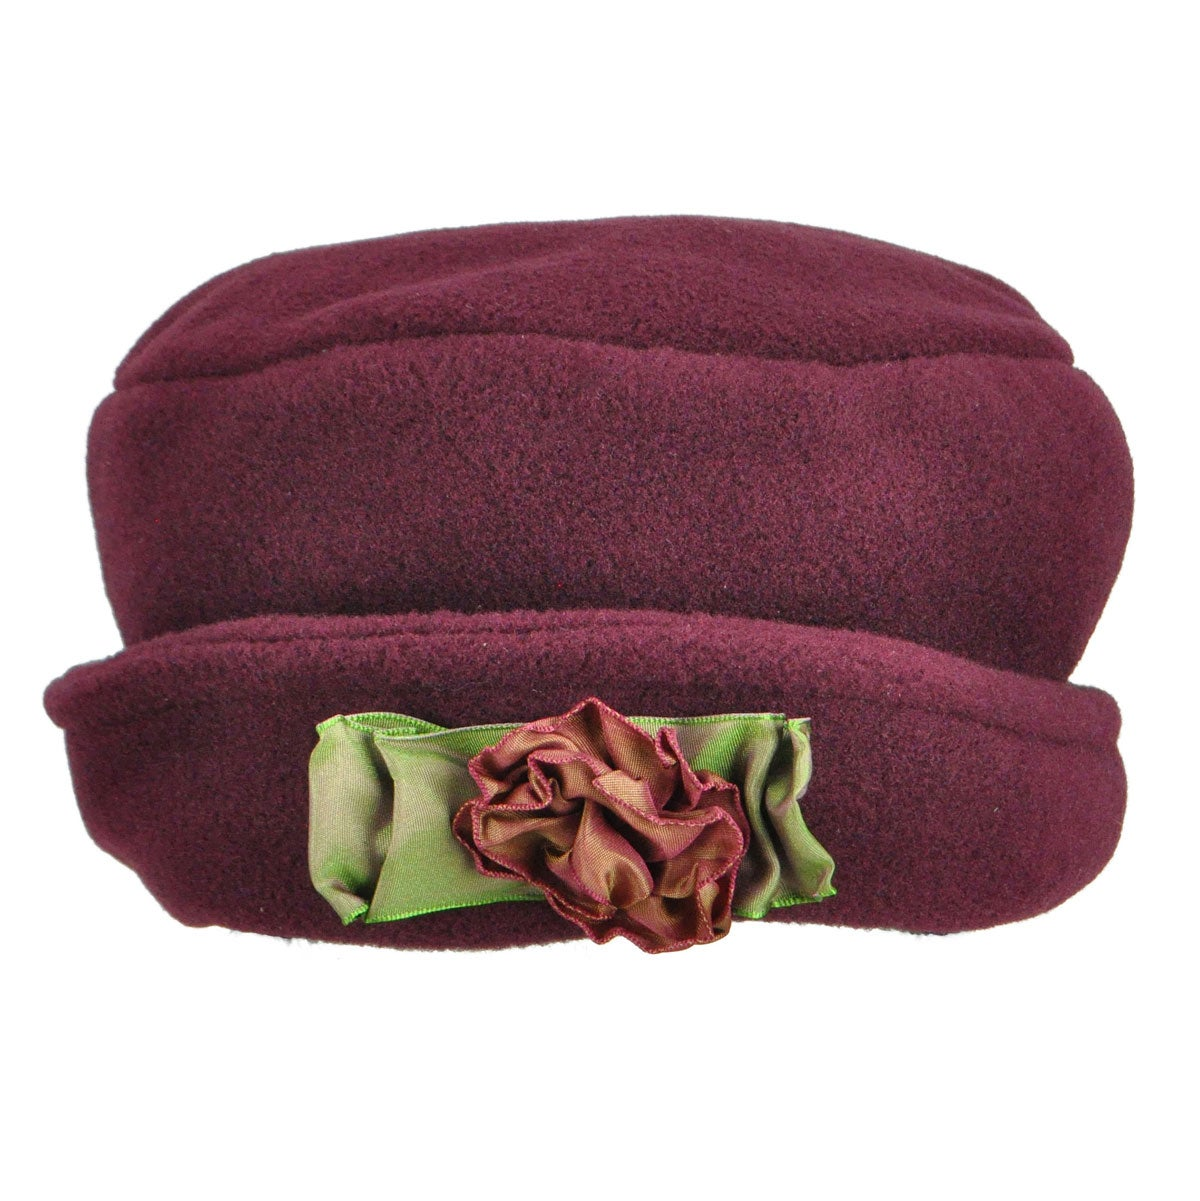 1920s Hat Styles for Women- History Beyond the Cloche Hat Vail Cloche $43.00 AT vintagedancer.com